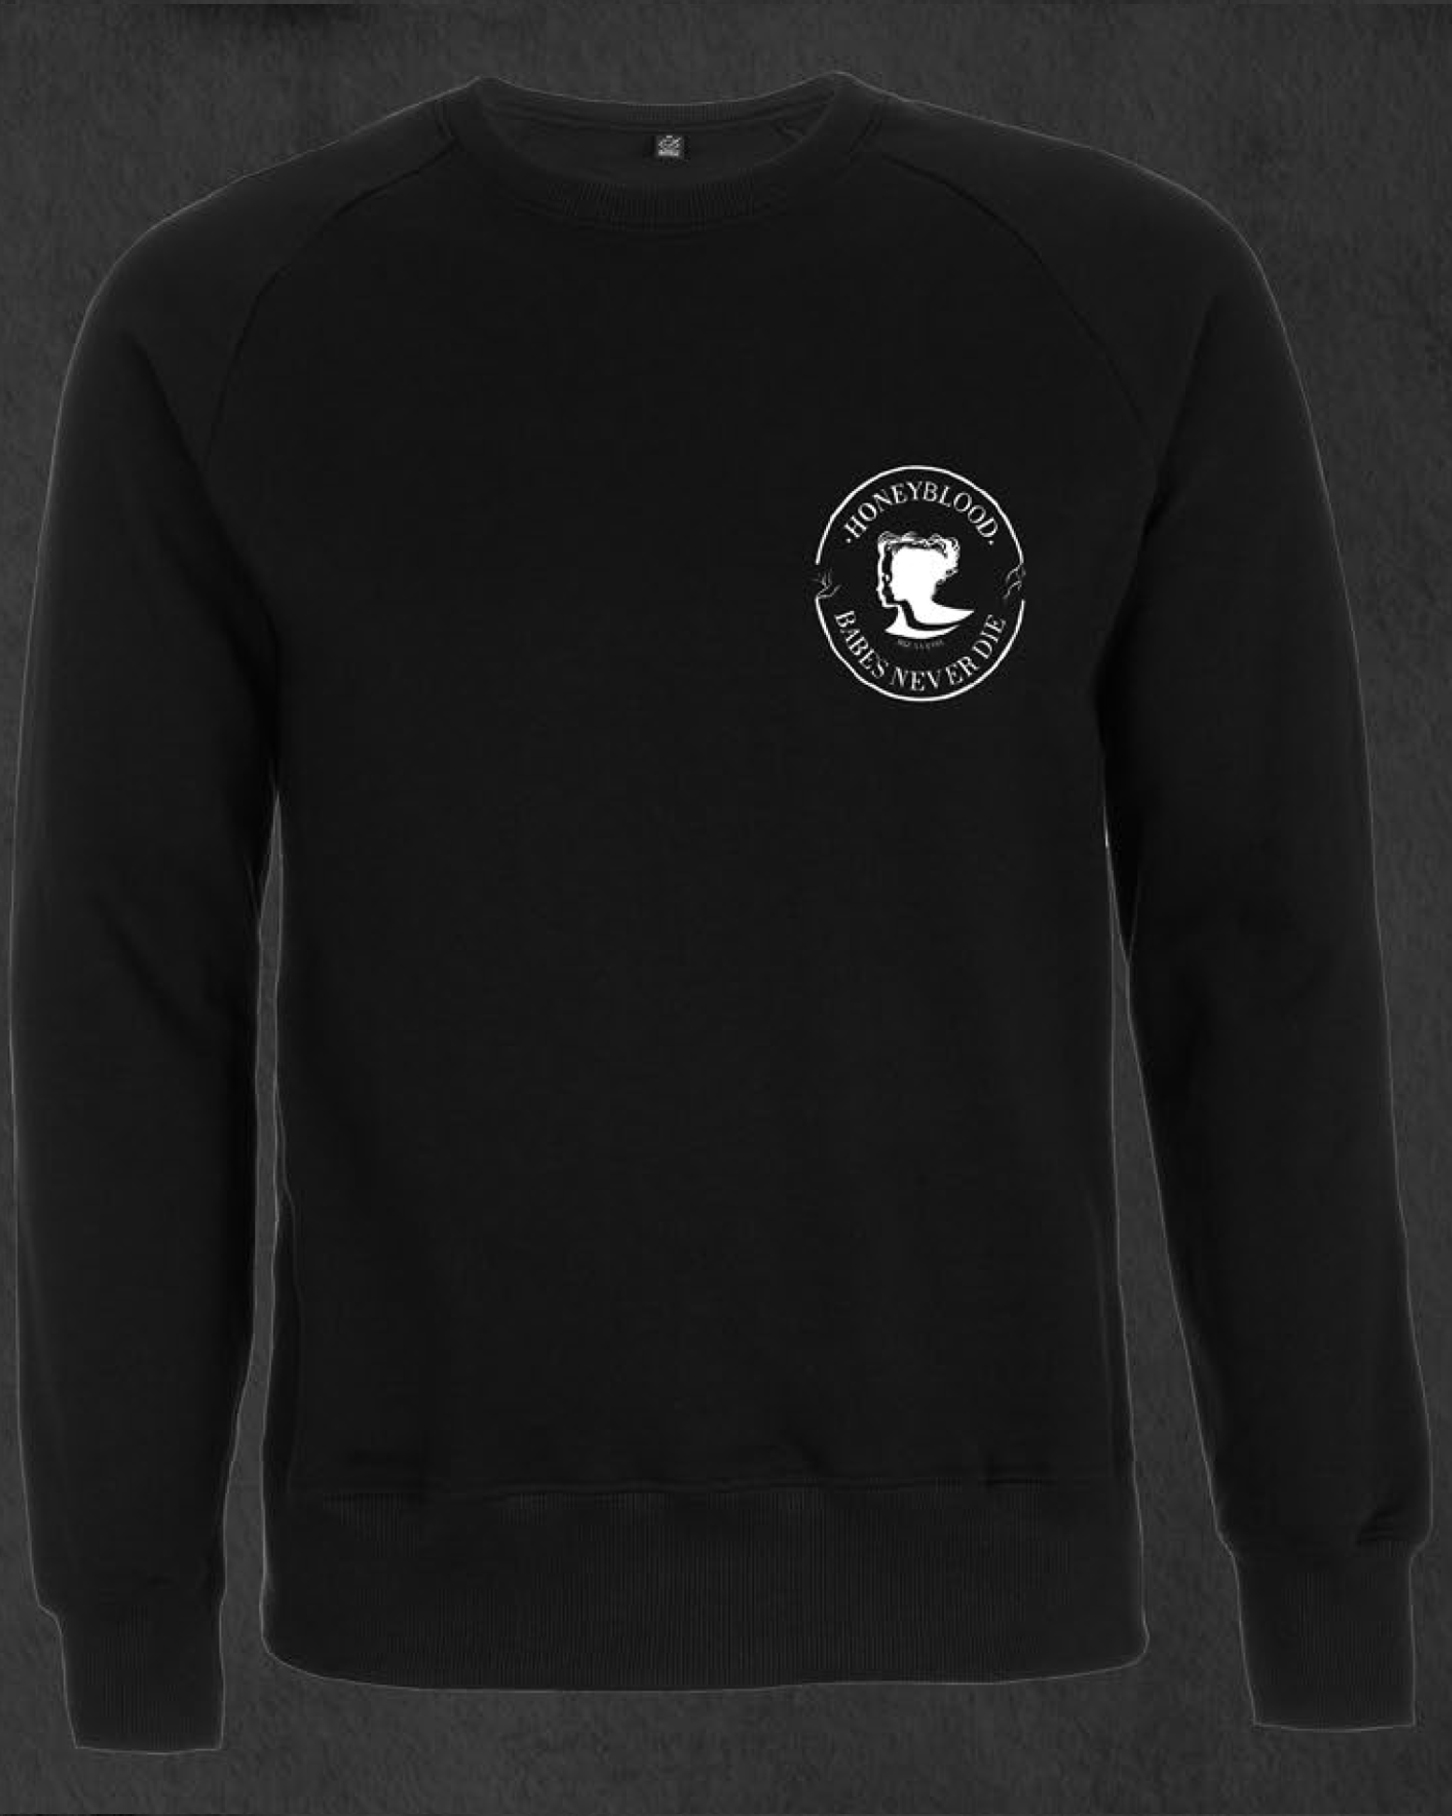 'Babes Never Die' Sweatshirt (Black)